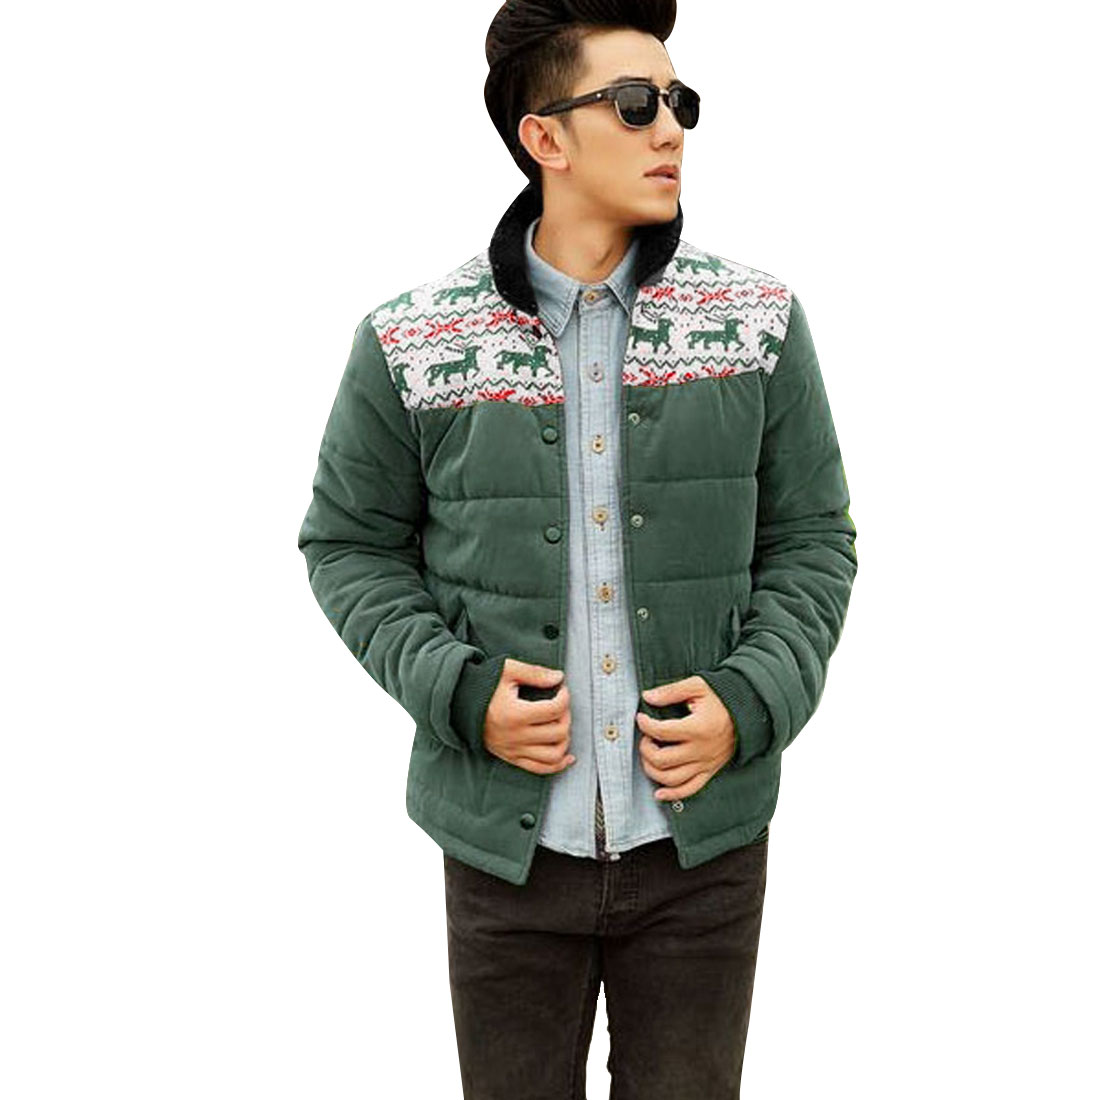 X'mas Men Textured Stand Collar Button Olive Green Coat M